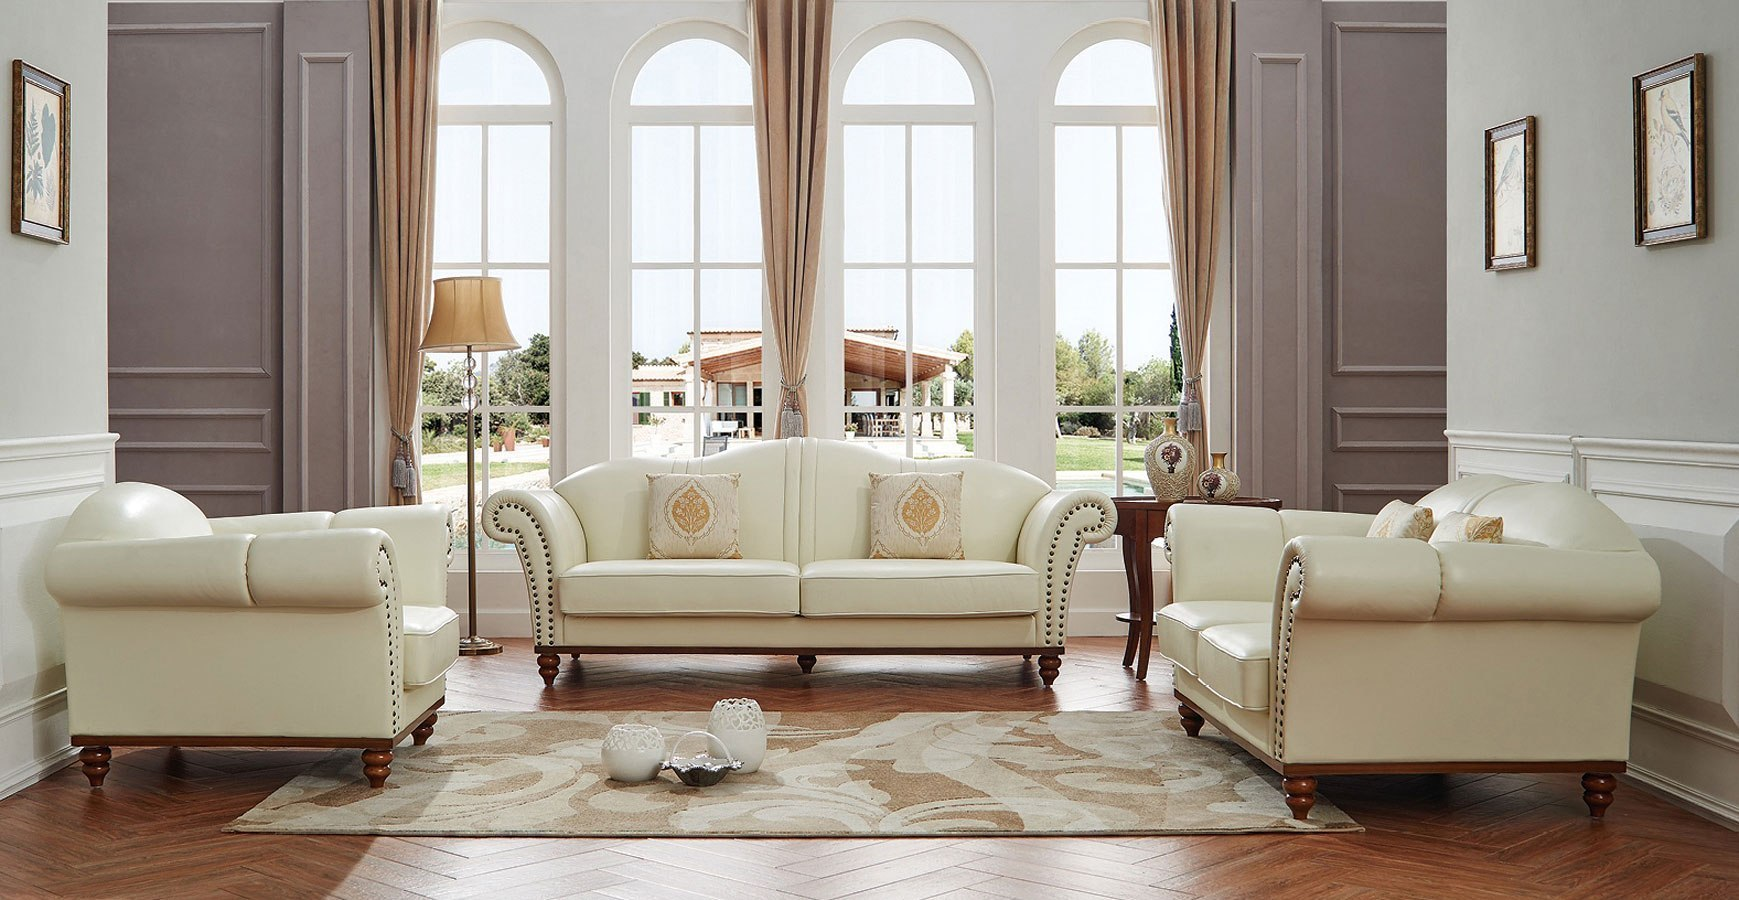 2601 Italian Leather Living Room Set By Esf Furniture